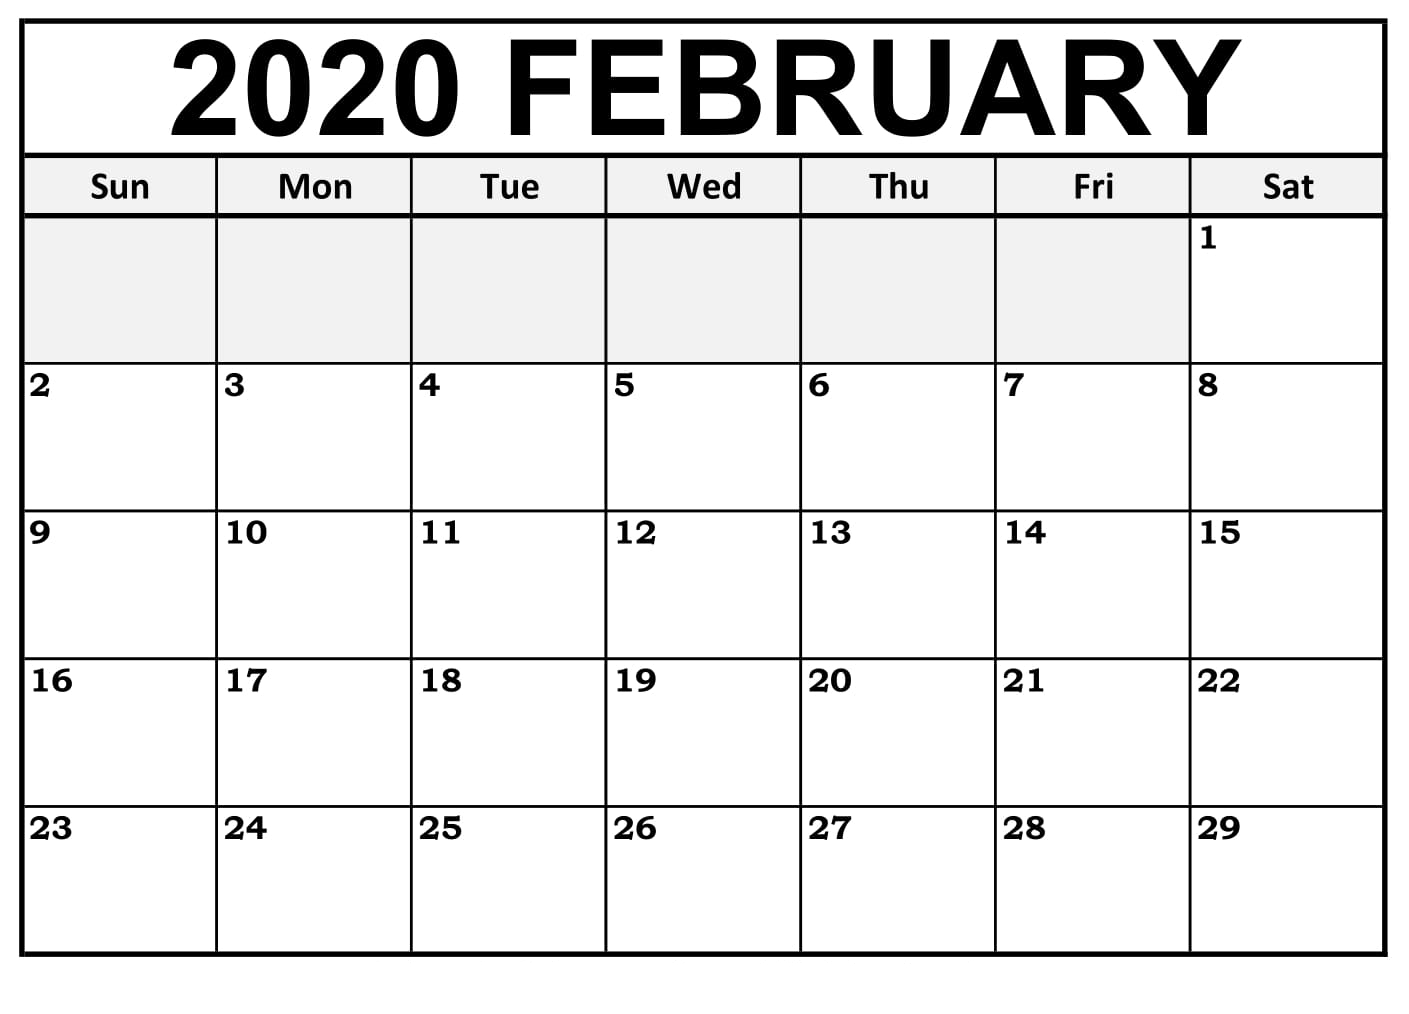 Printable February Calendar For 2020 – Waterproof Paper | 12